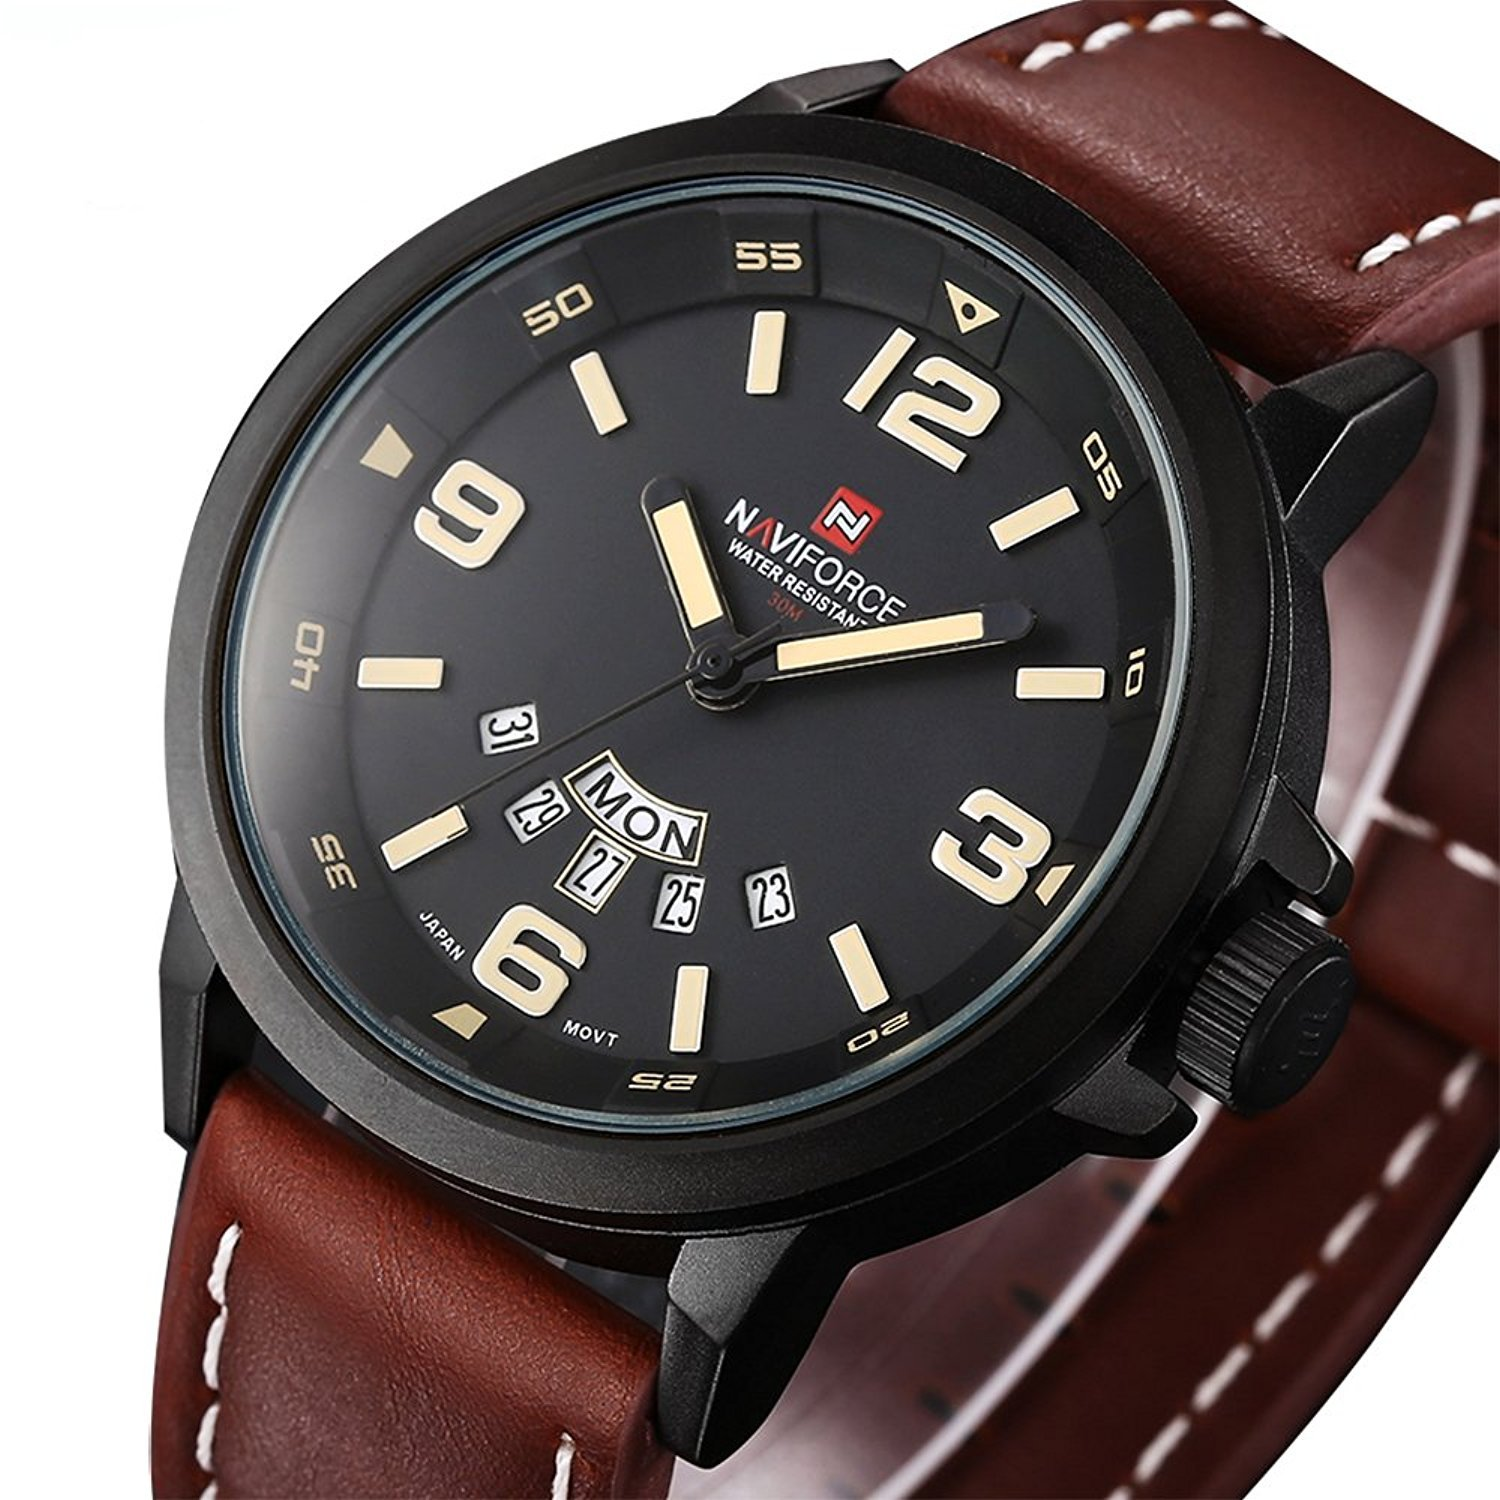 edit soldier fairfax store men by the category mens s watches accessories industrial